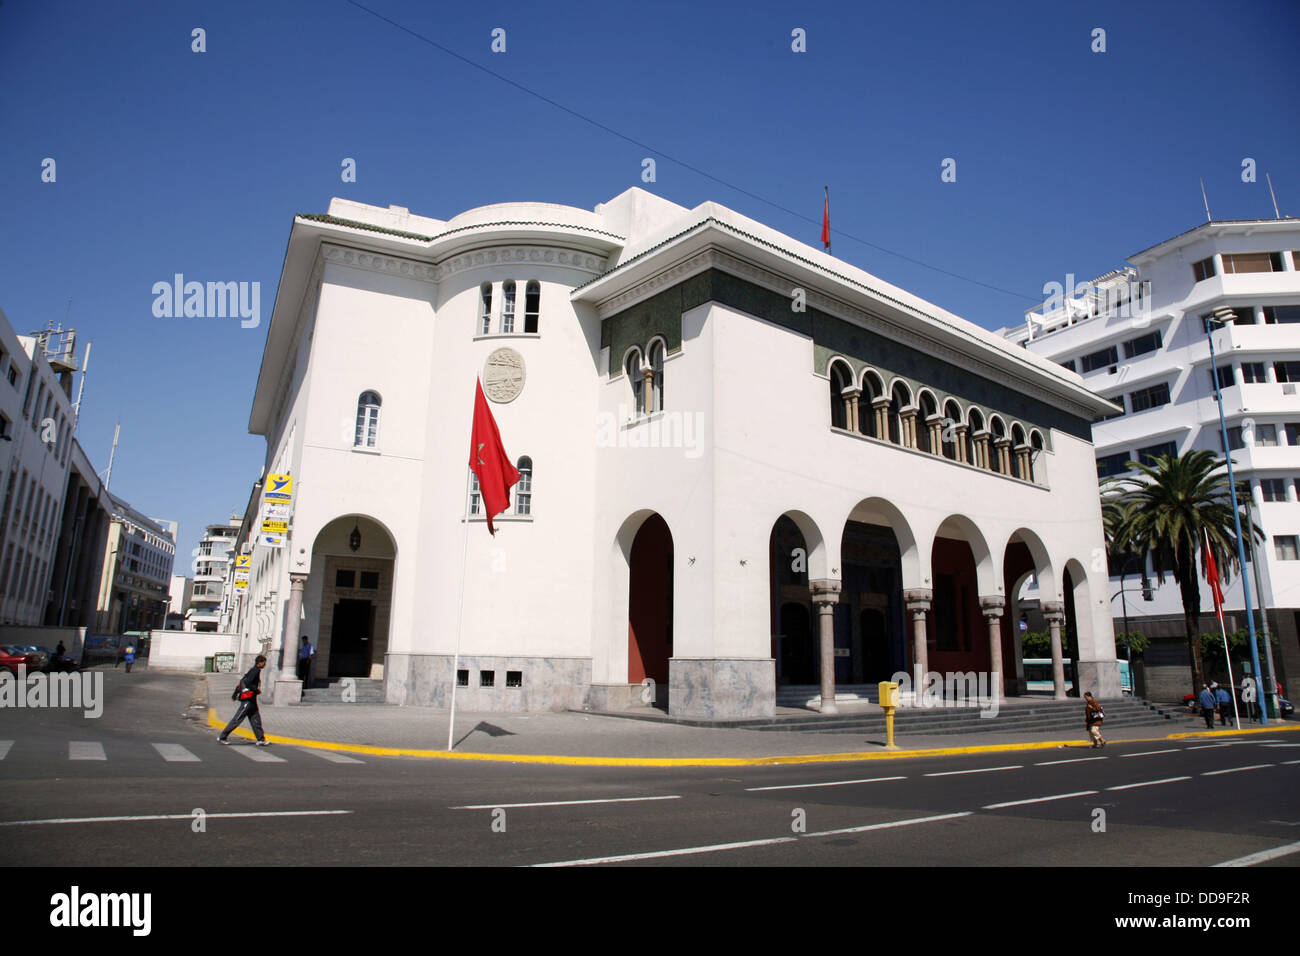 Post office casablanca morocco stock photo  alamy